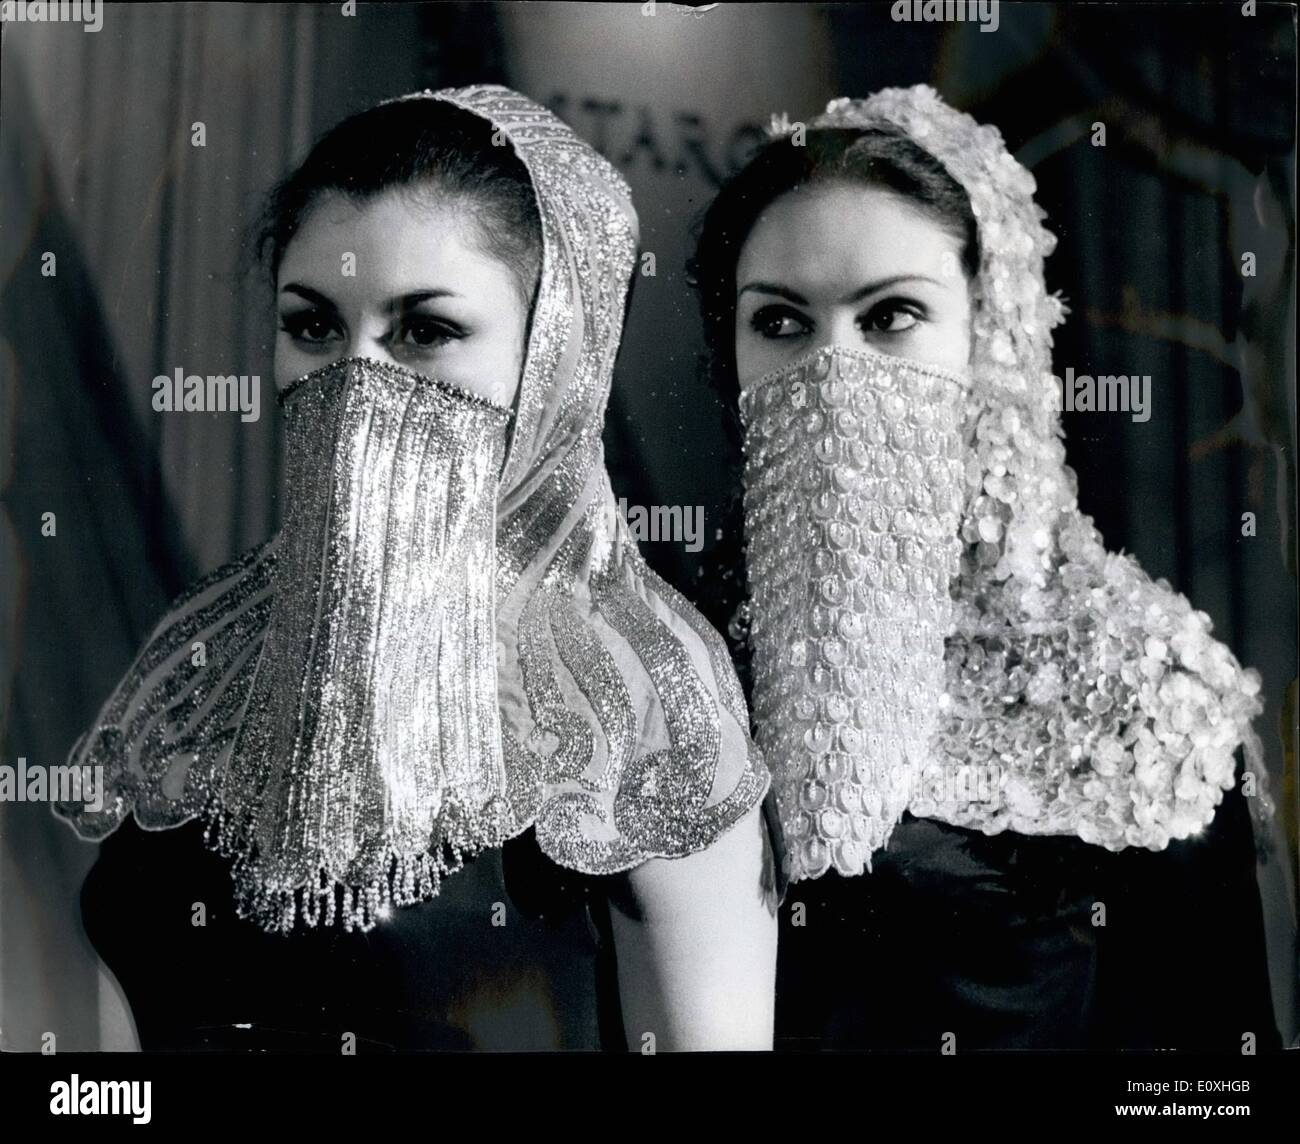 Jan 01 1967 Fashion Show In London The Associate Members Of The Stock Photo 69426011 Alamy